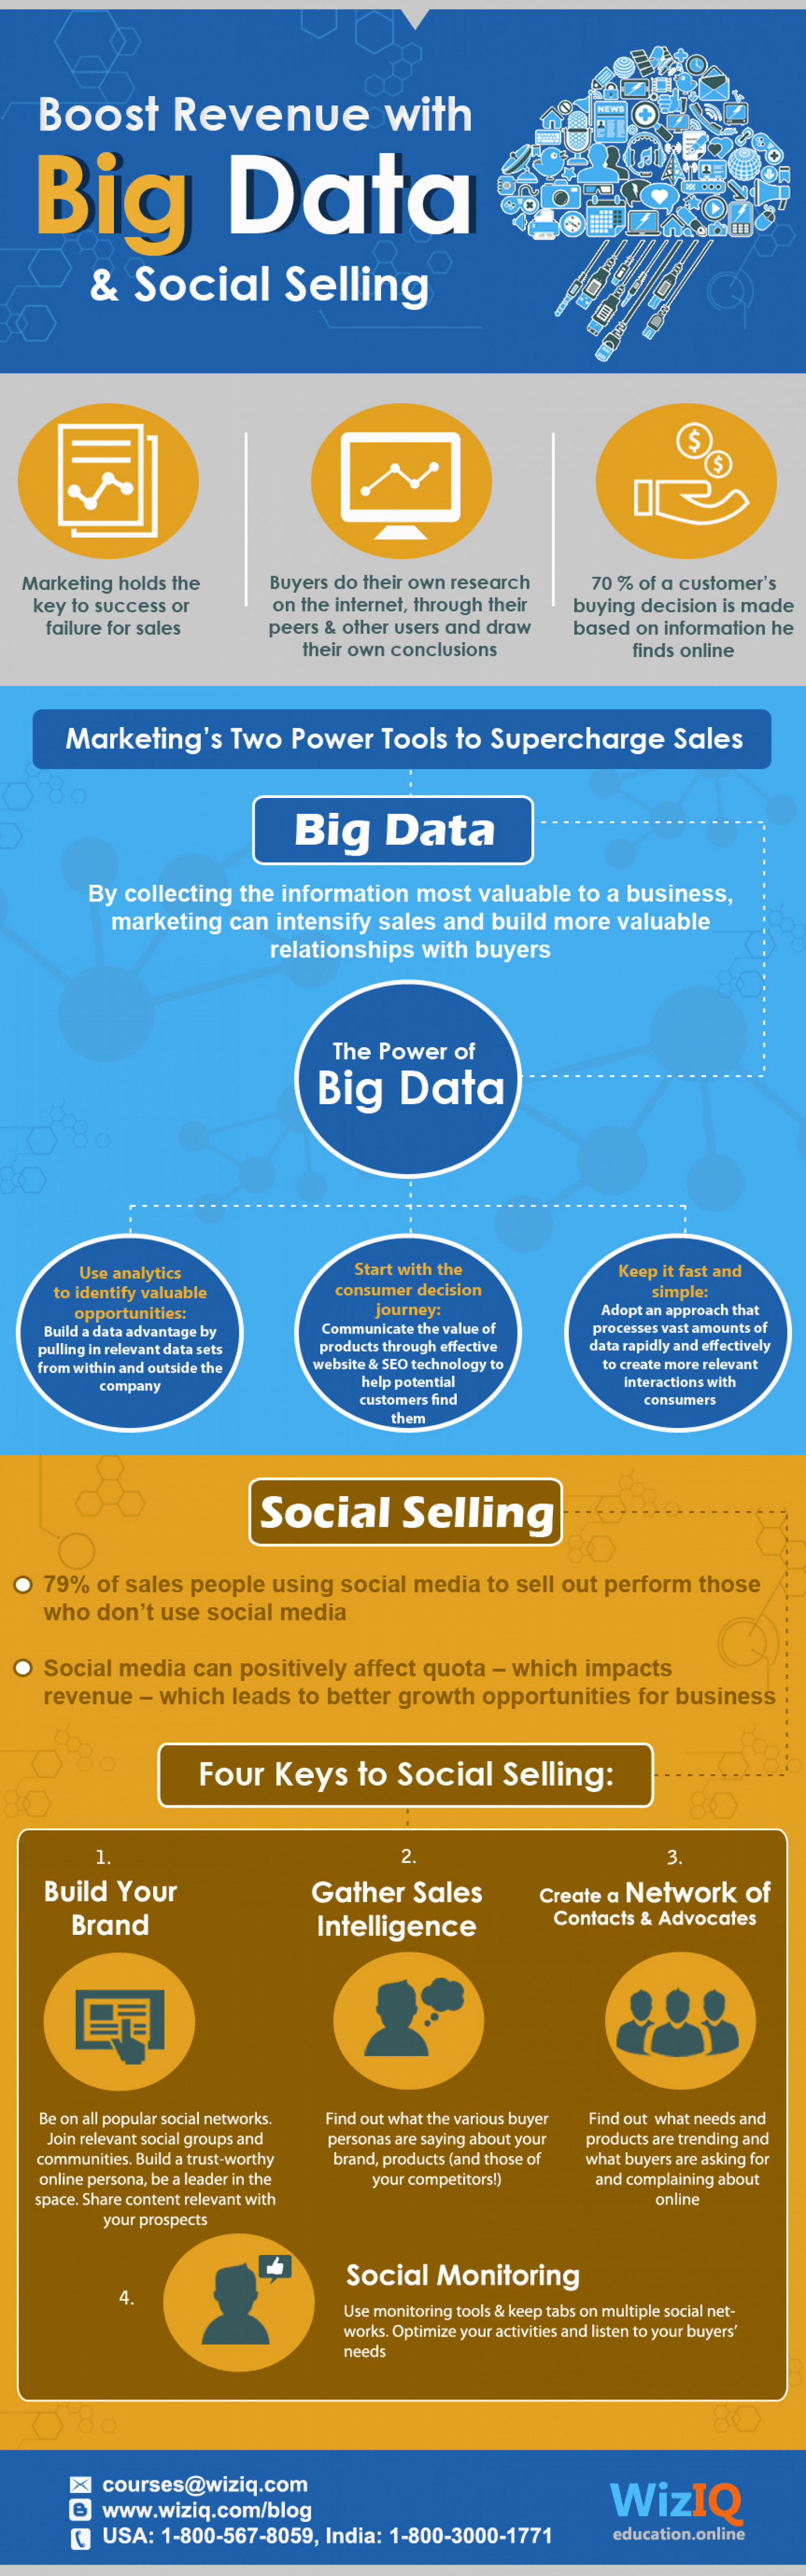 Boost Revenue with Big Data & Social Selling Infographic